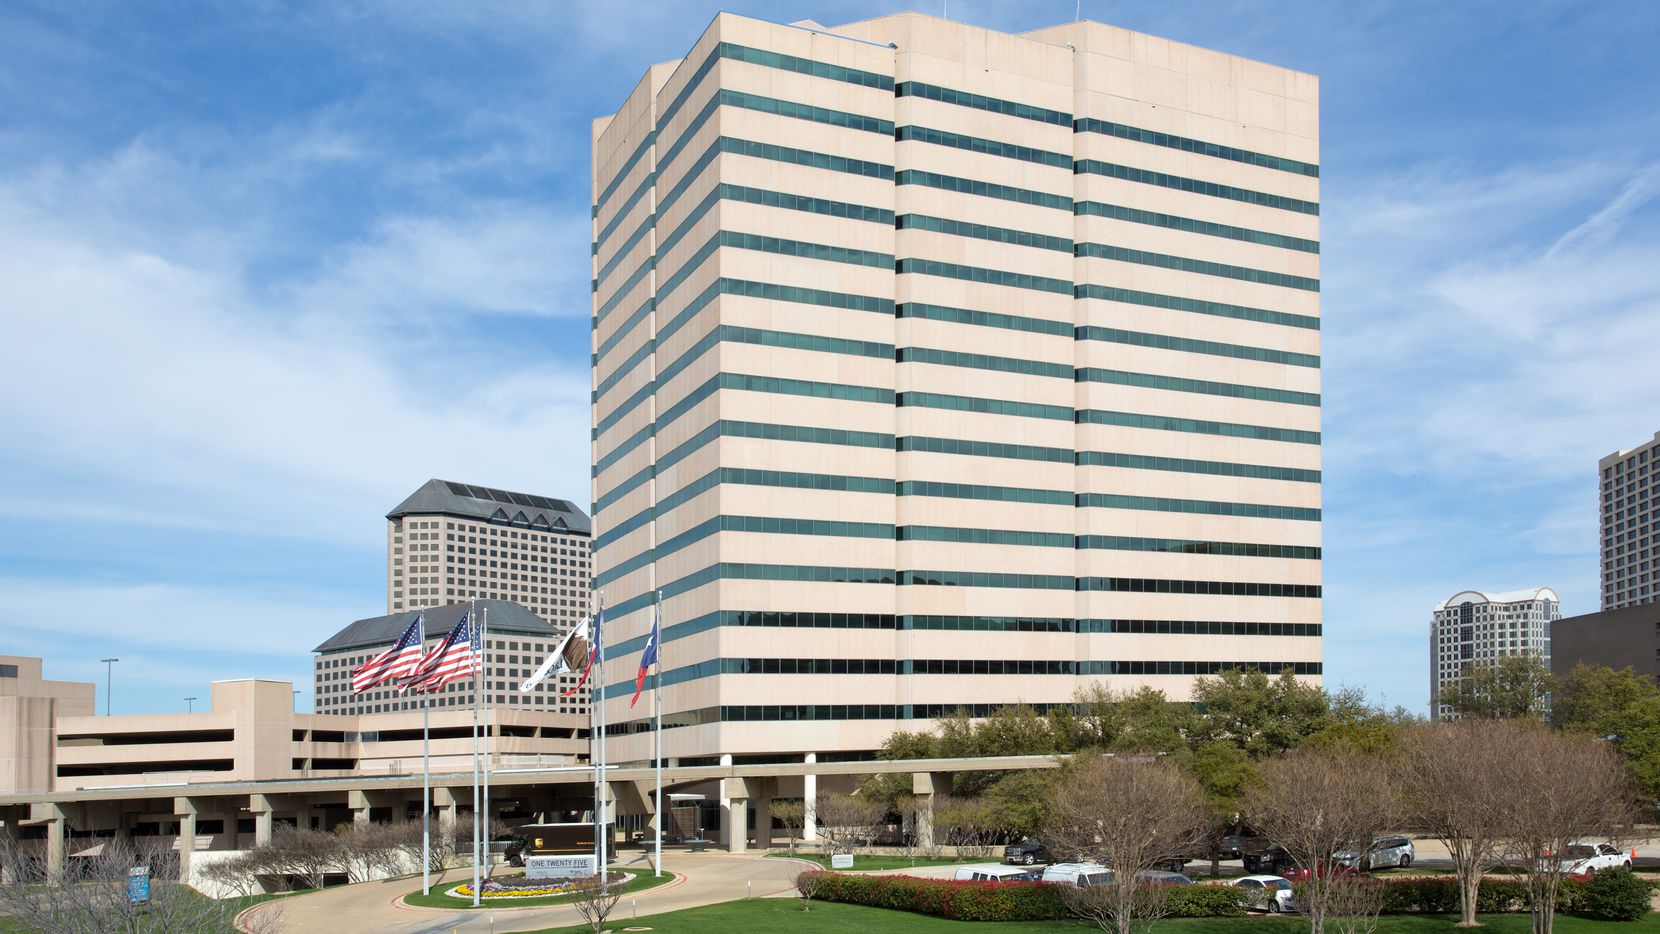 The office buildings in Las Colinas' Urban Center were built in the 1980s.